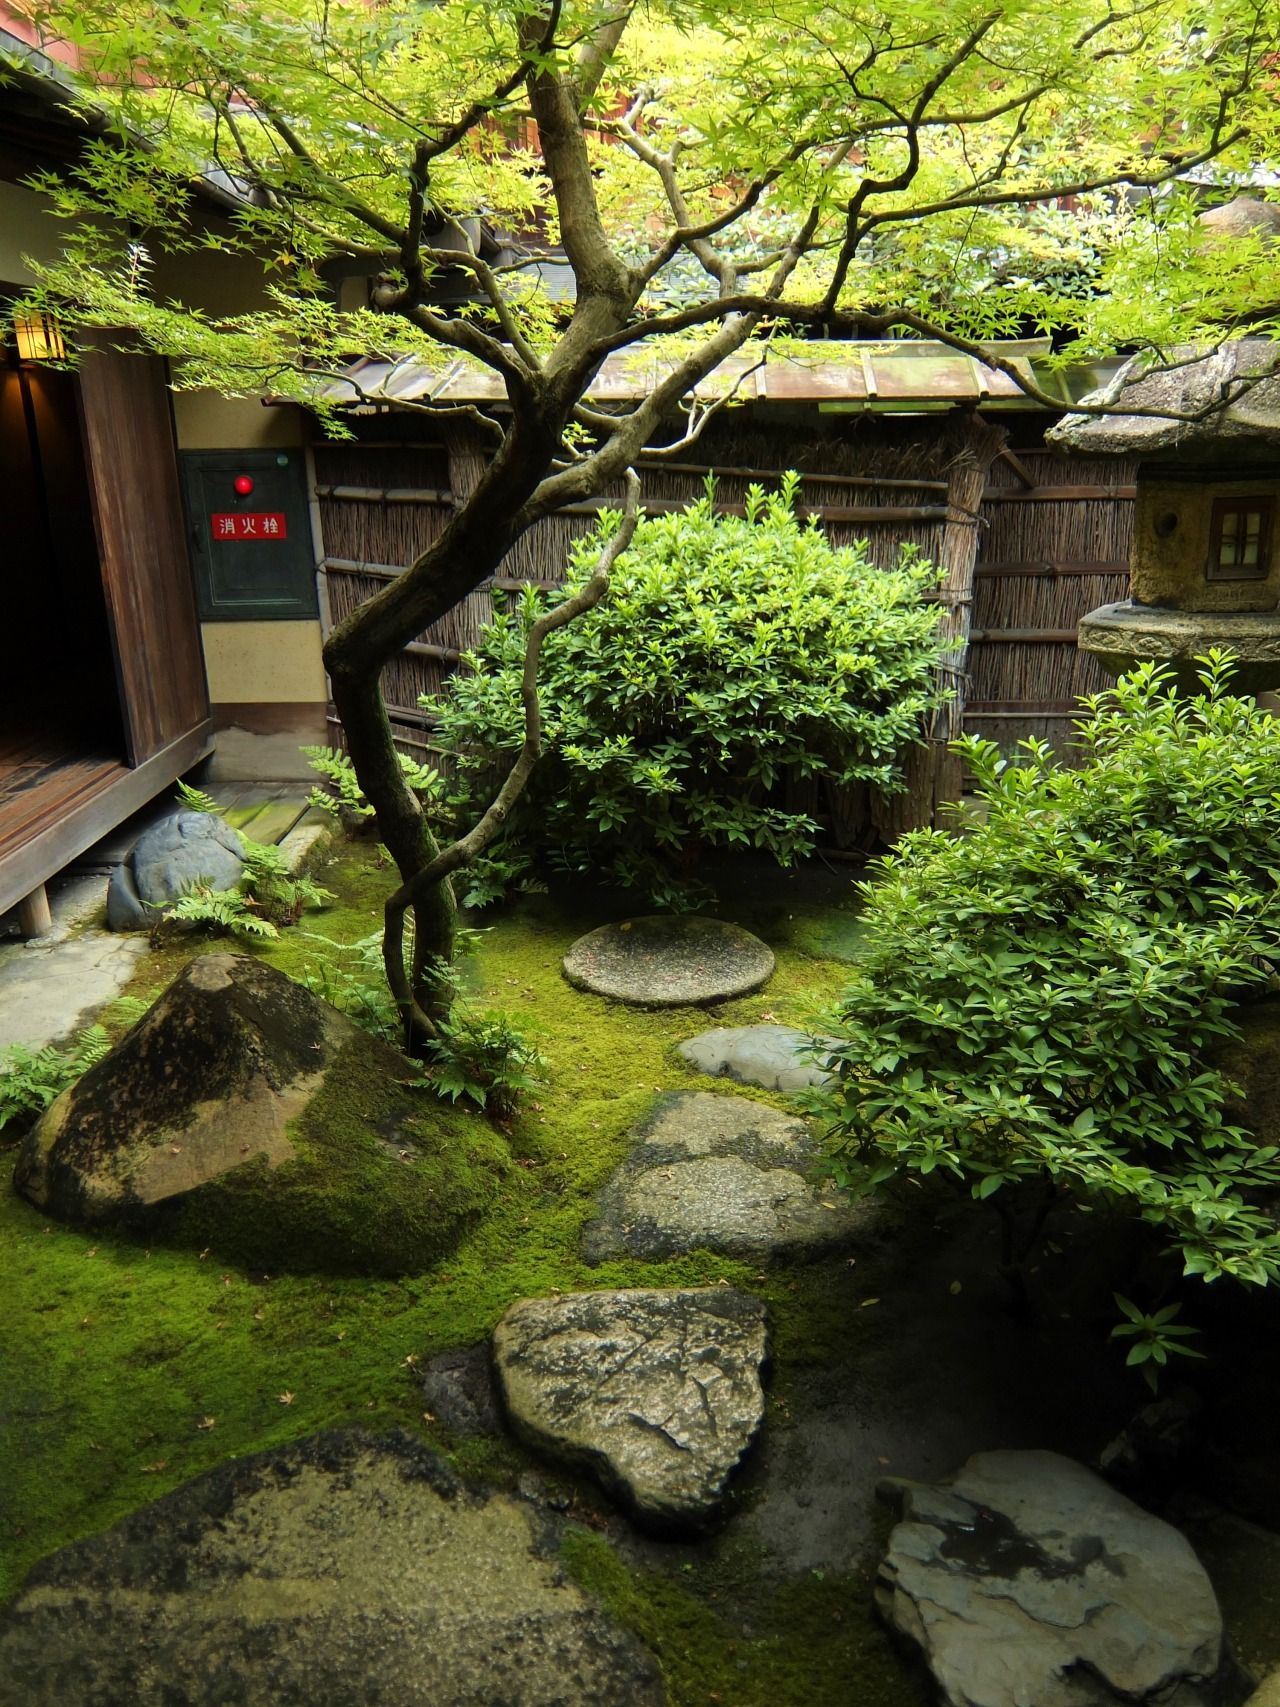 Japanese garden in sumiya shimabara kyoto japan 2014 for Japanese garden small yard